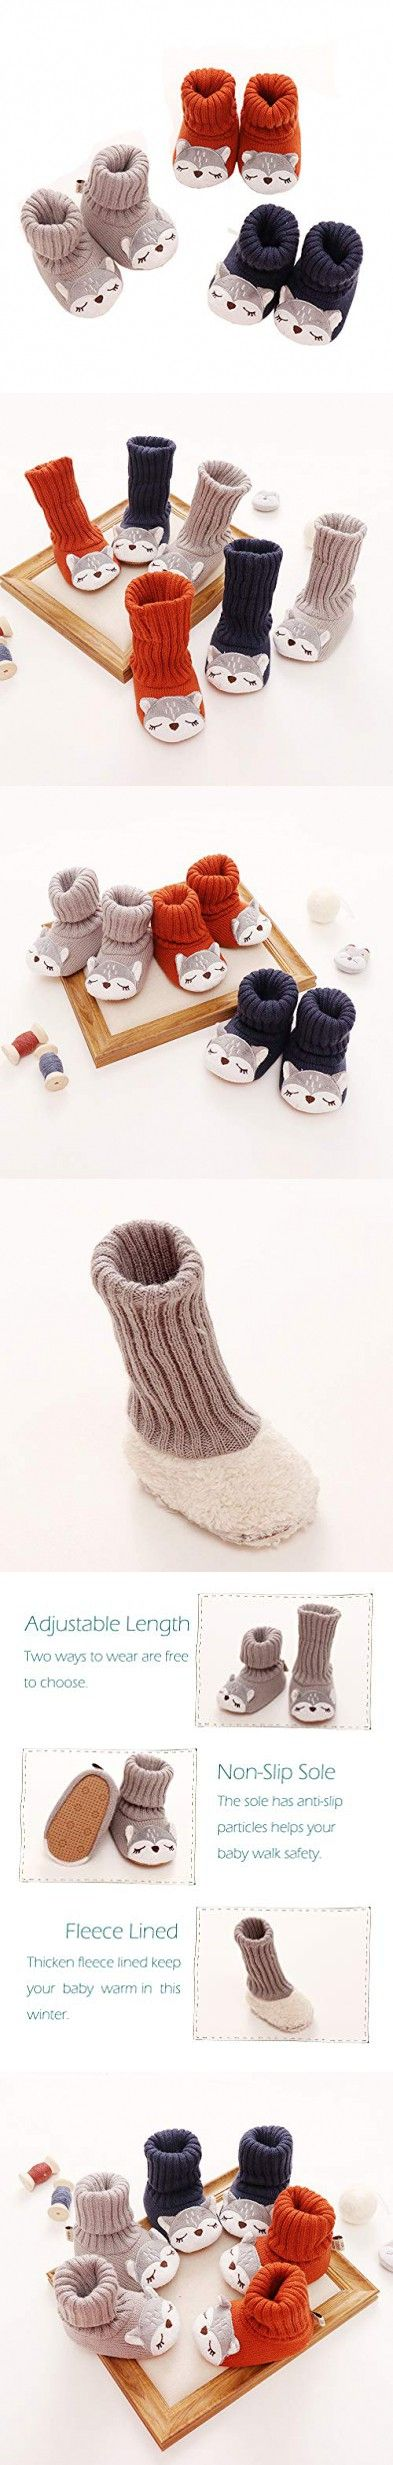 Xinqiao Unisex-Baby Soft Shoe Anti-Slip Infant Newborn Sneakers for Boys Girls